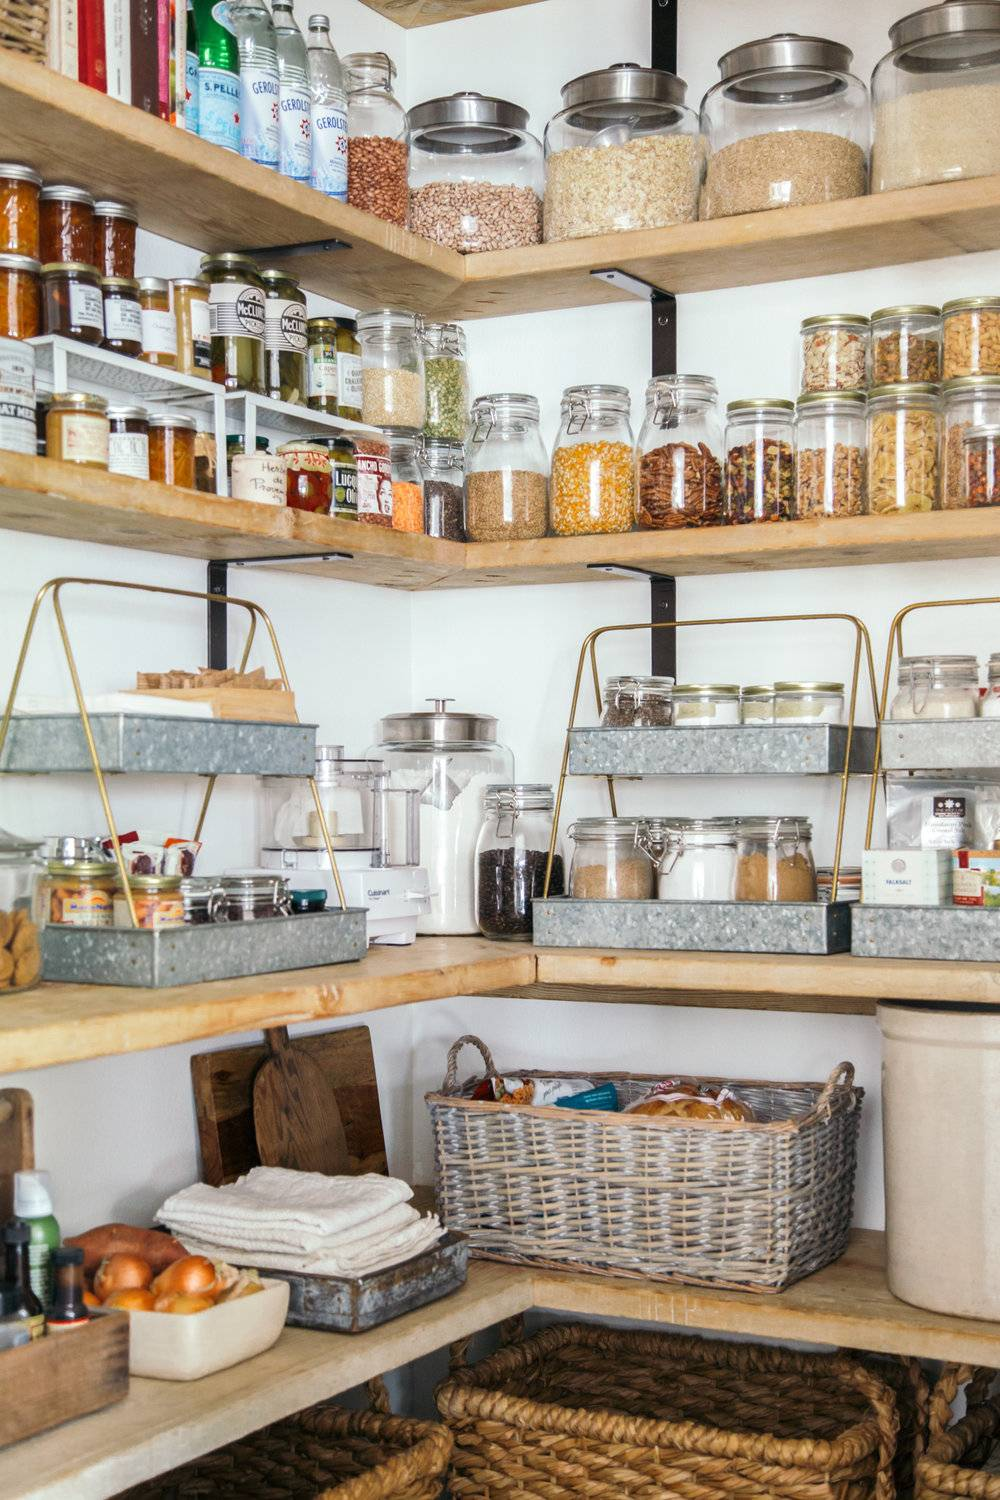 Well organized pantry